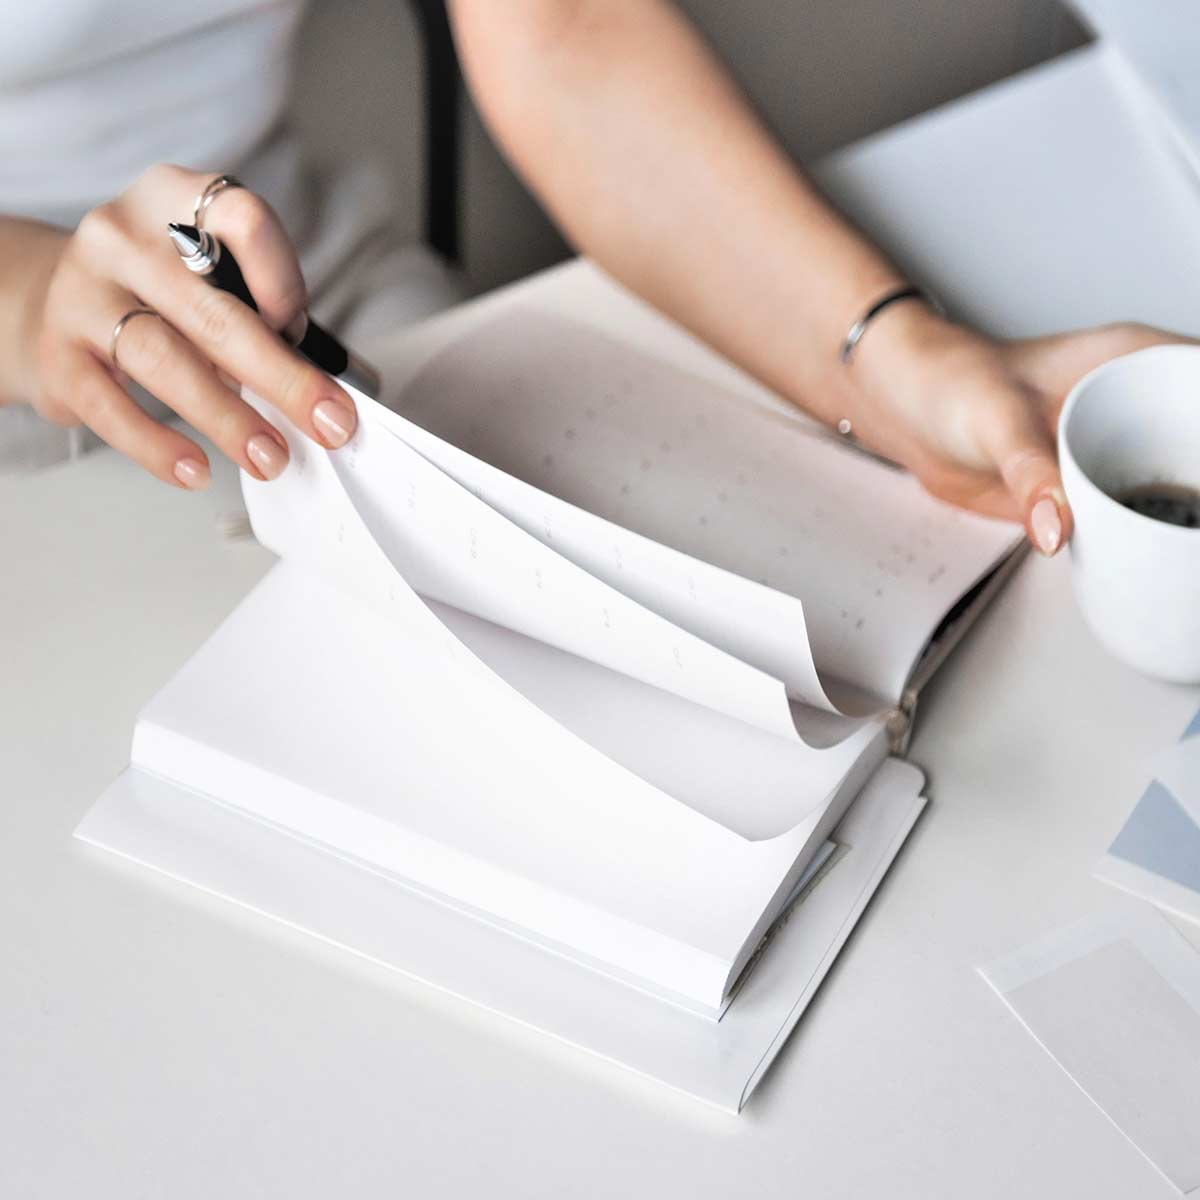 Adult woman sitting at white desk holding coffee cup while preparing to do daily journaling.